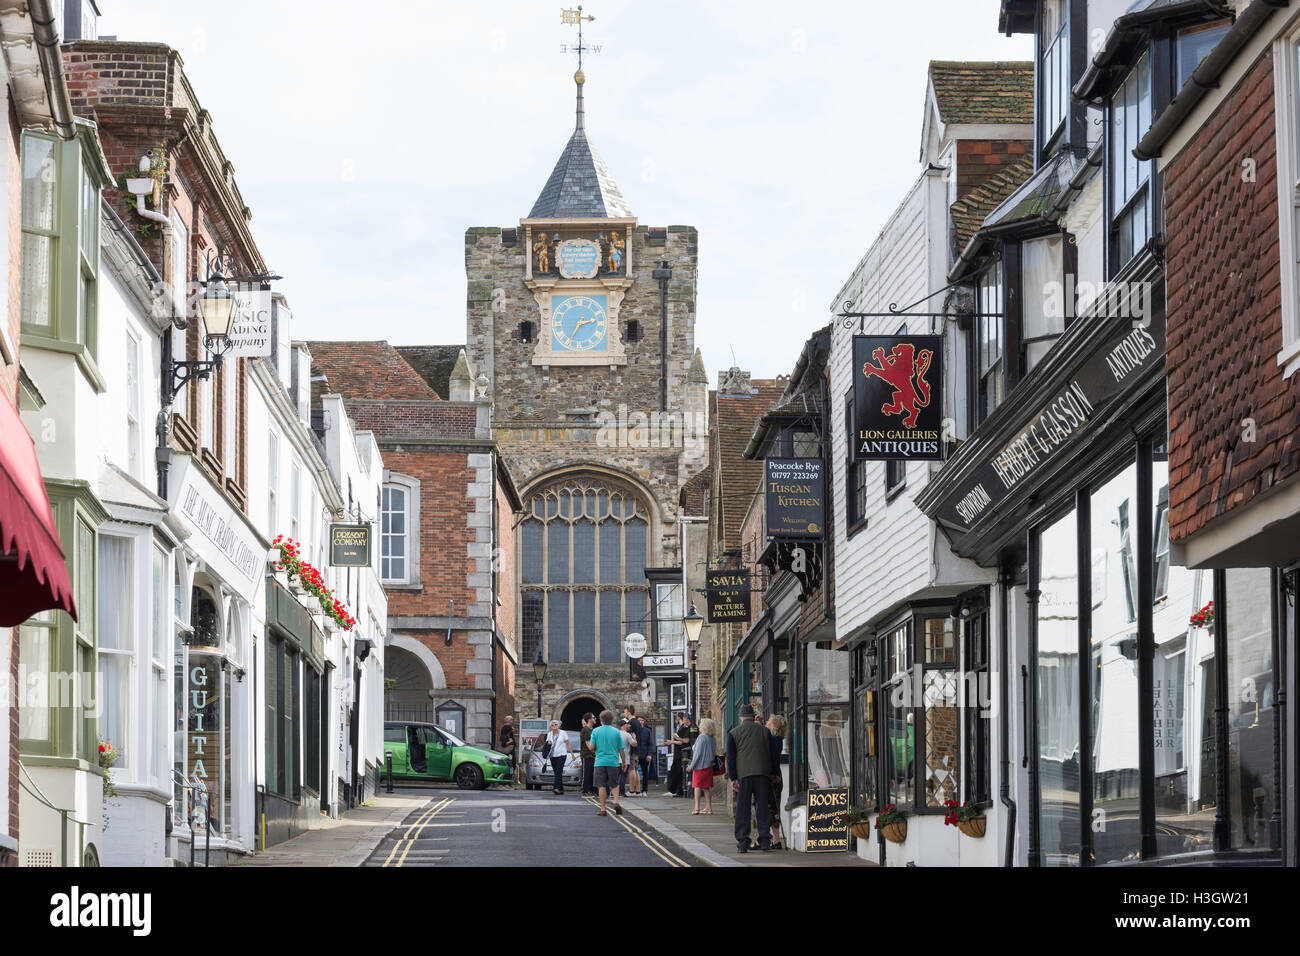 St Mary's Church, Lion Street, Rye, East Sussex, England, United Kingdom - Stock Image